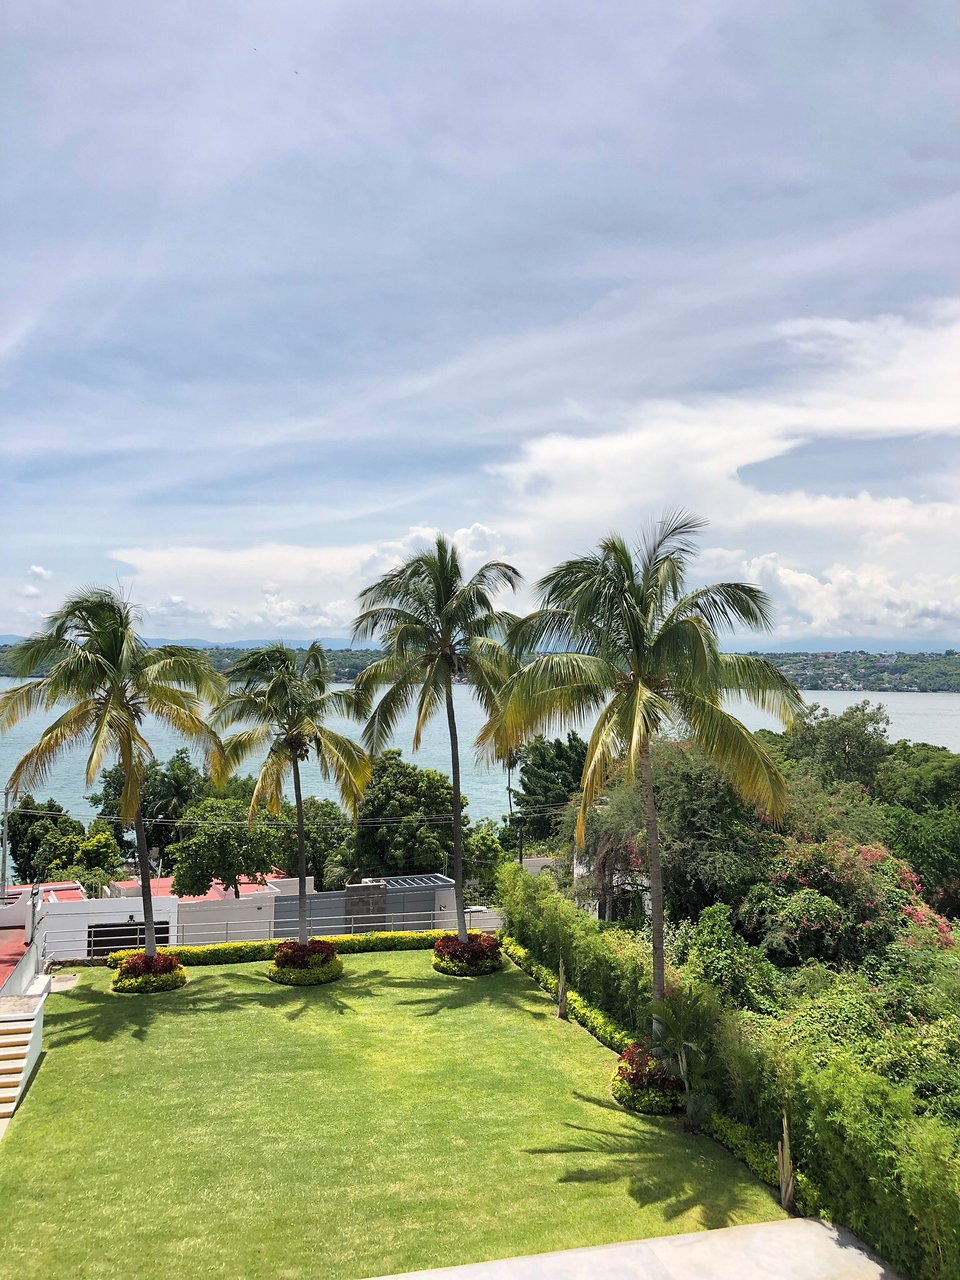 The 10 Best Hotels In Tequesquitengo For 2020 From 30 Tripadvisor